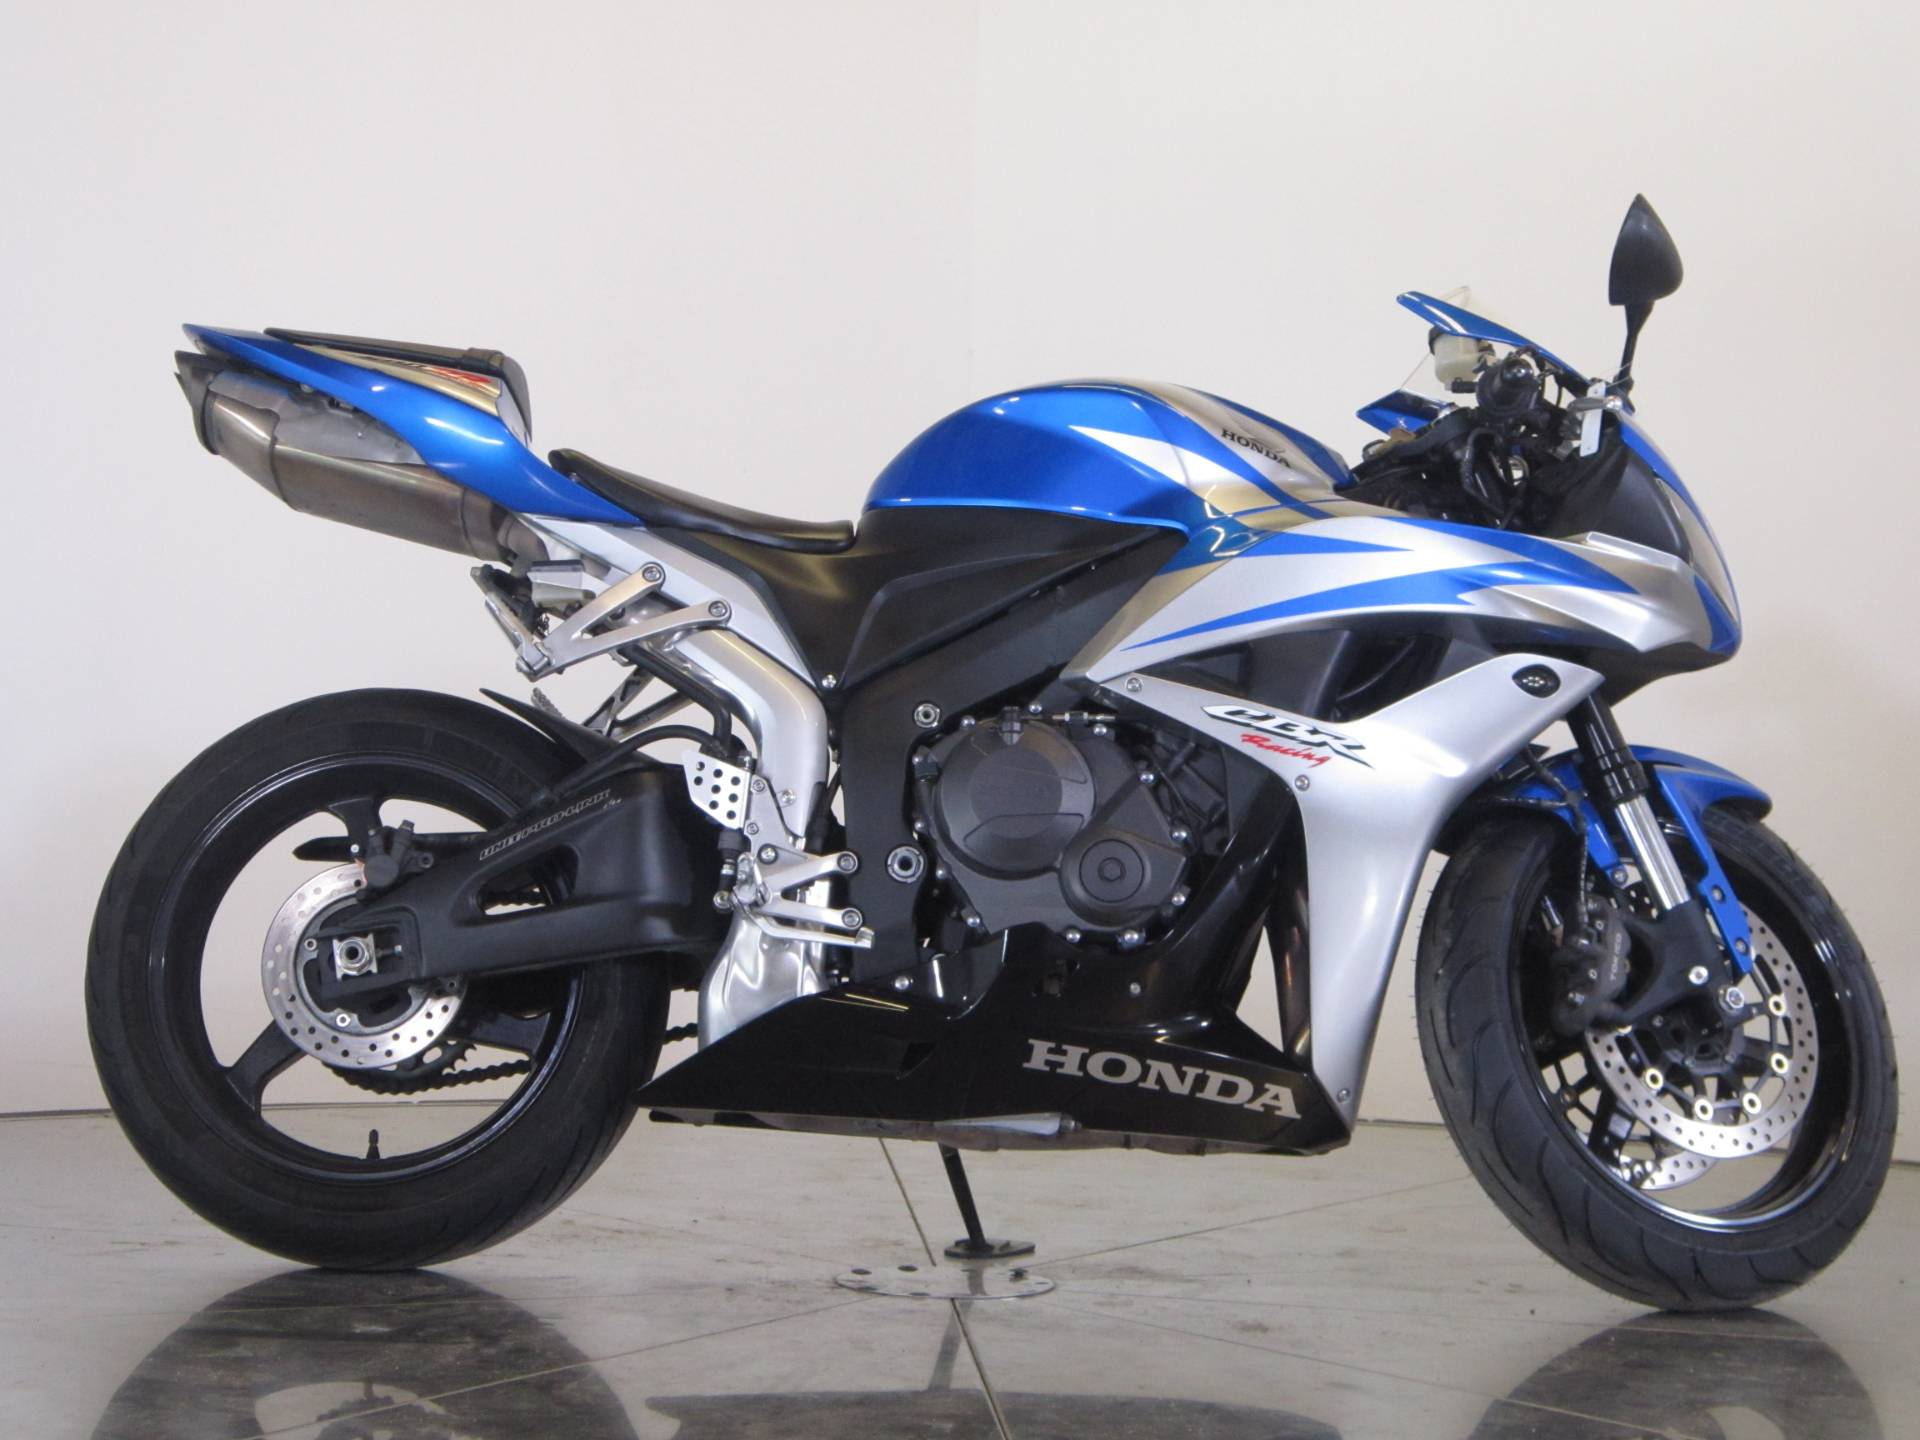 Used 2007 Honda Cbr600rr Motorcycles In Greenwood Village Co